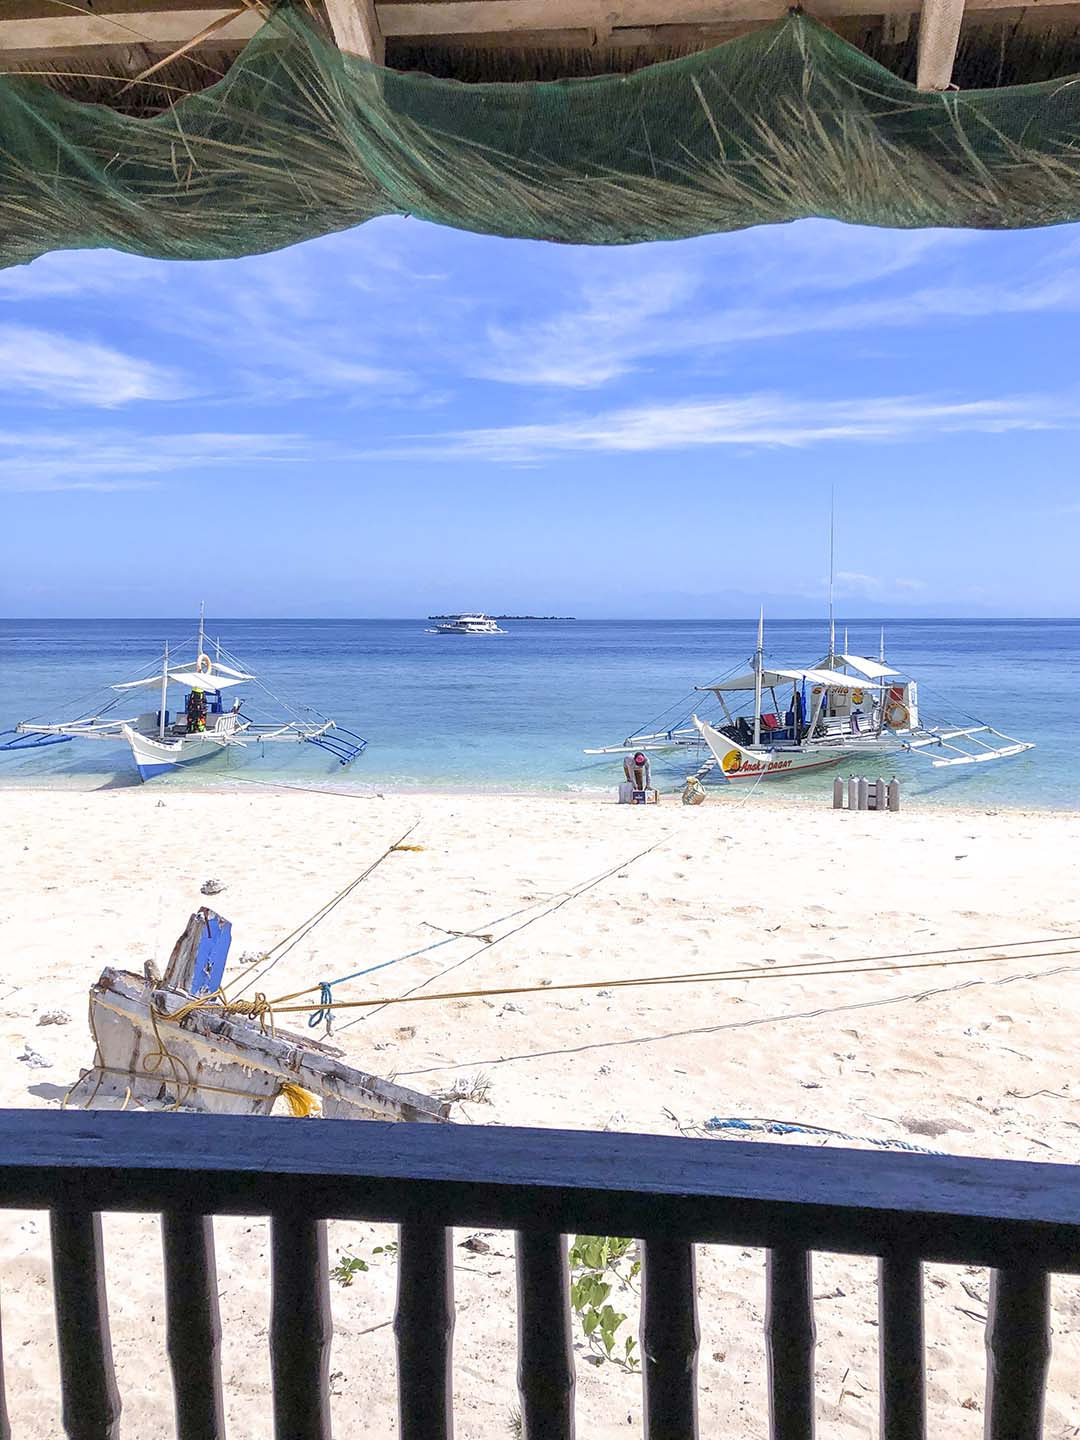 The view from my room in Apo Island